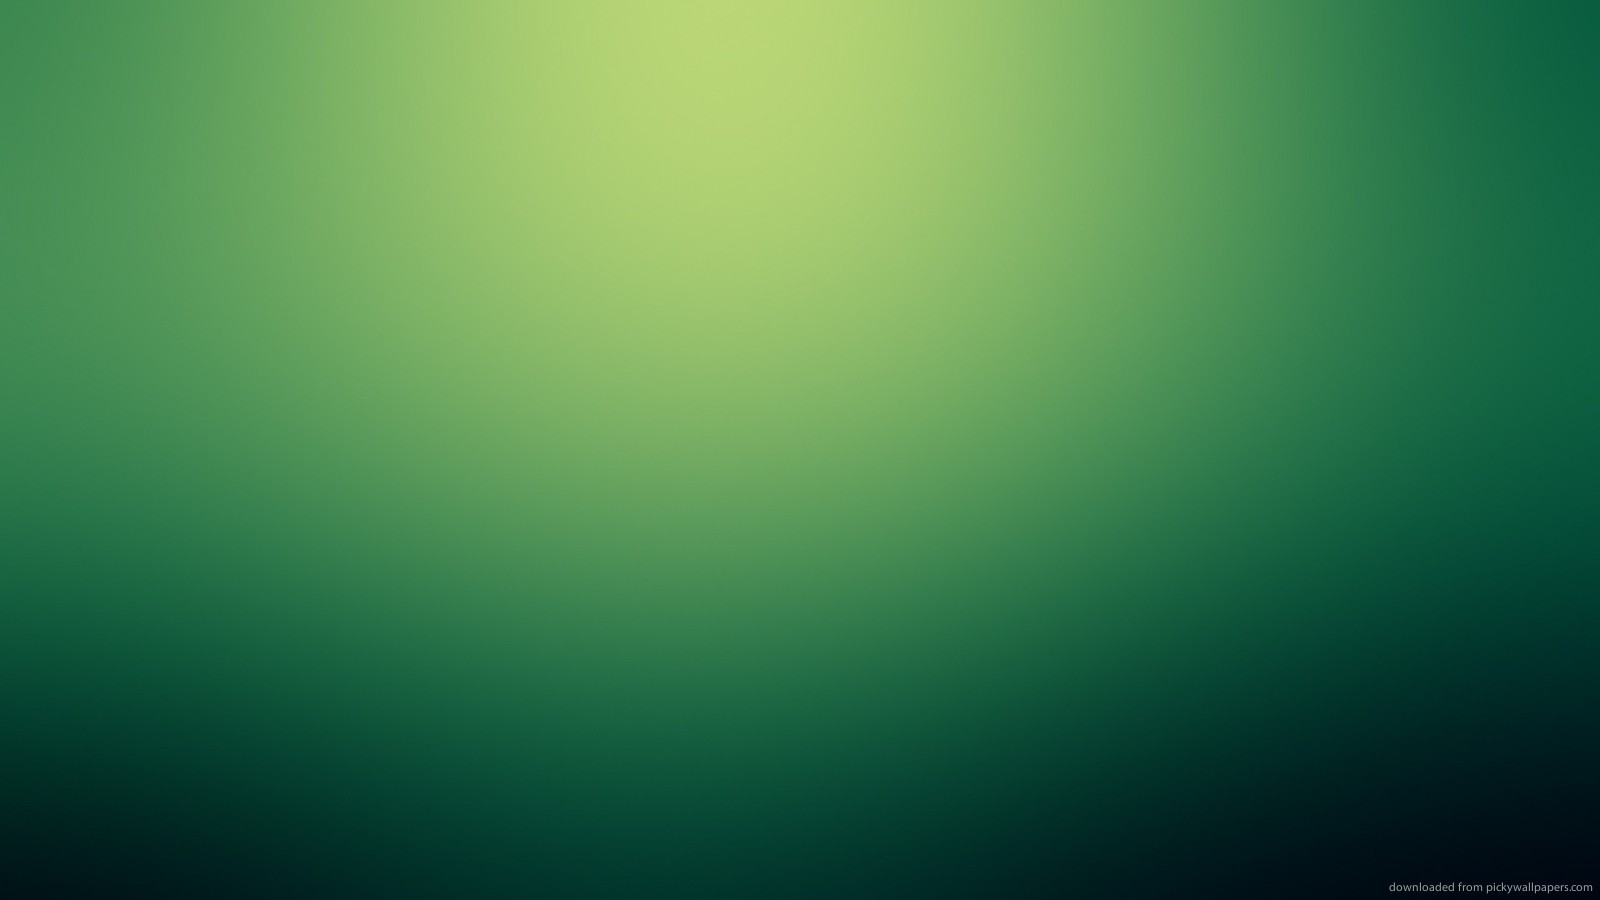 Simple 1600x900 HD Wallpapers - WallpaperSafari